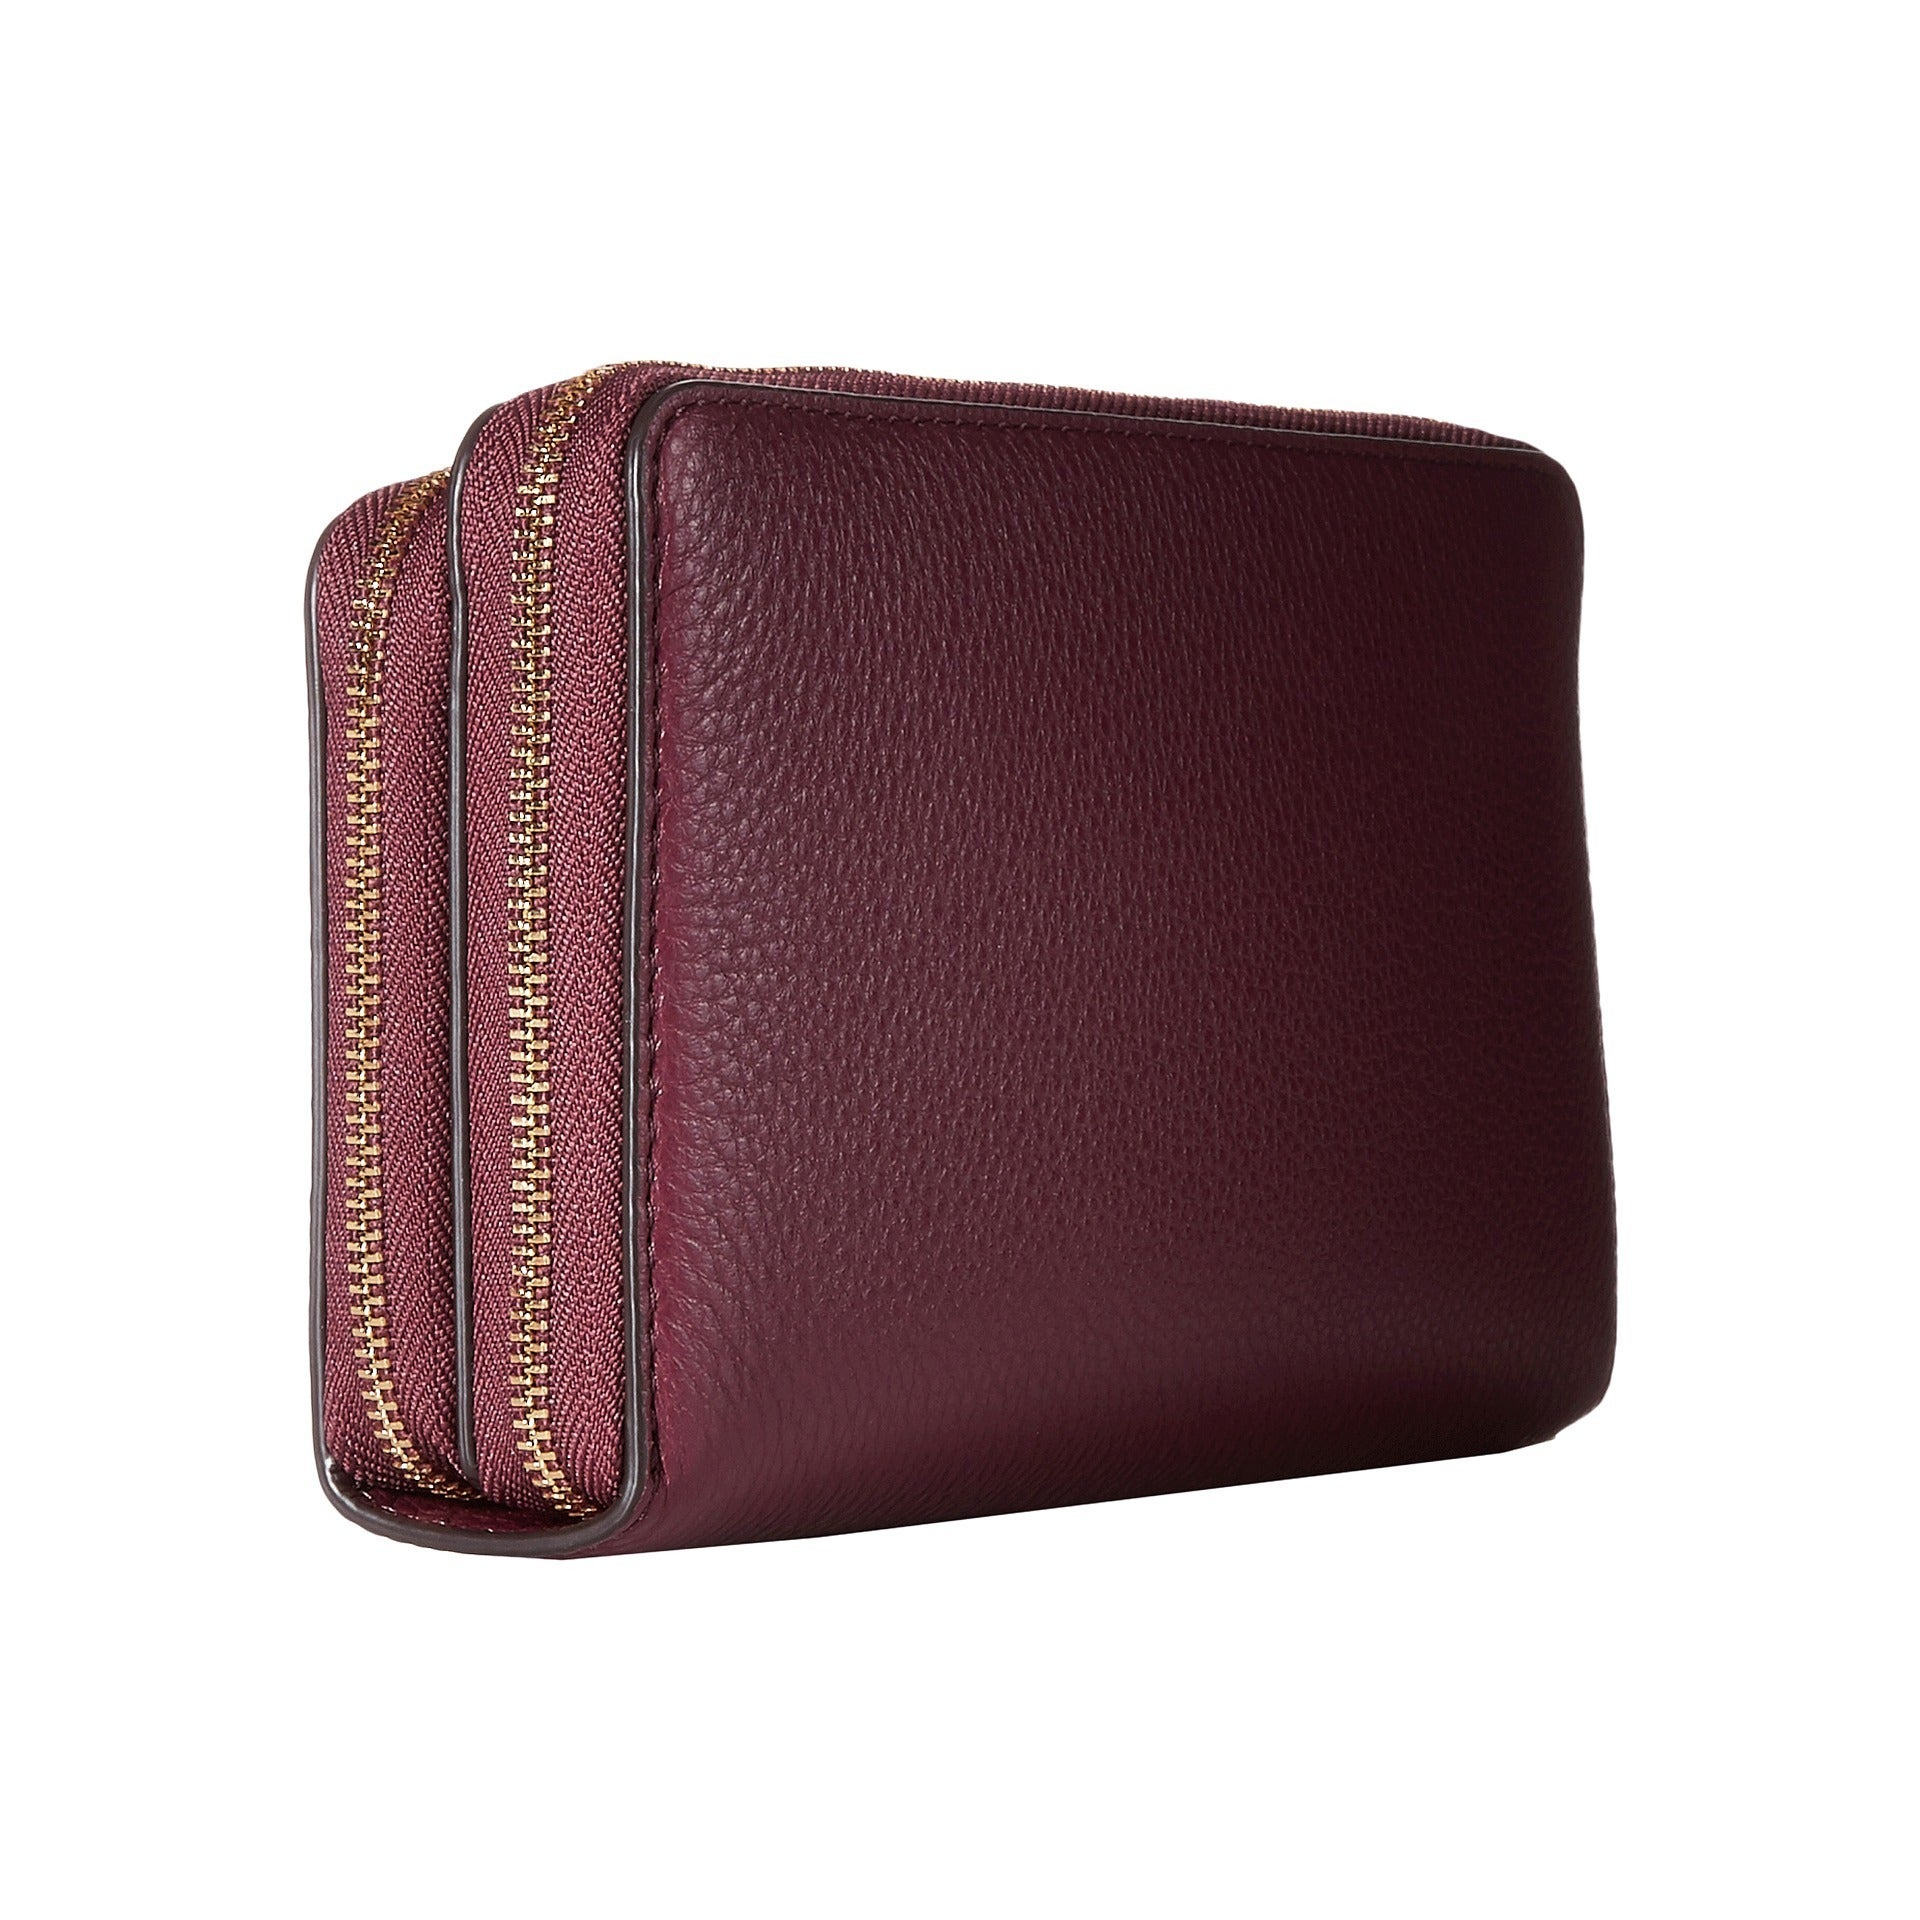 d1c6fda3ddb1 Shop Michael Kors Adele Plum Leather Double-zip Wallet - Free Shipping  Today - Overstock - 13344567